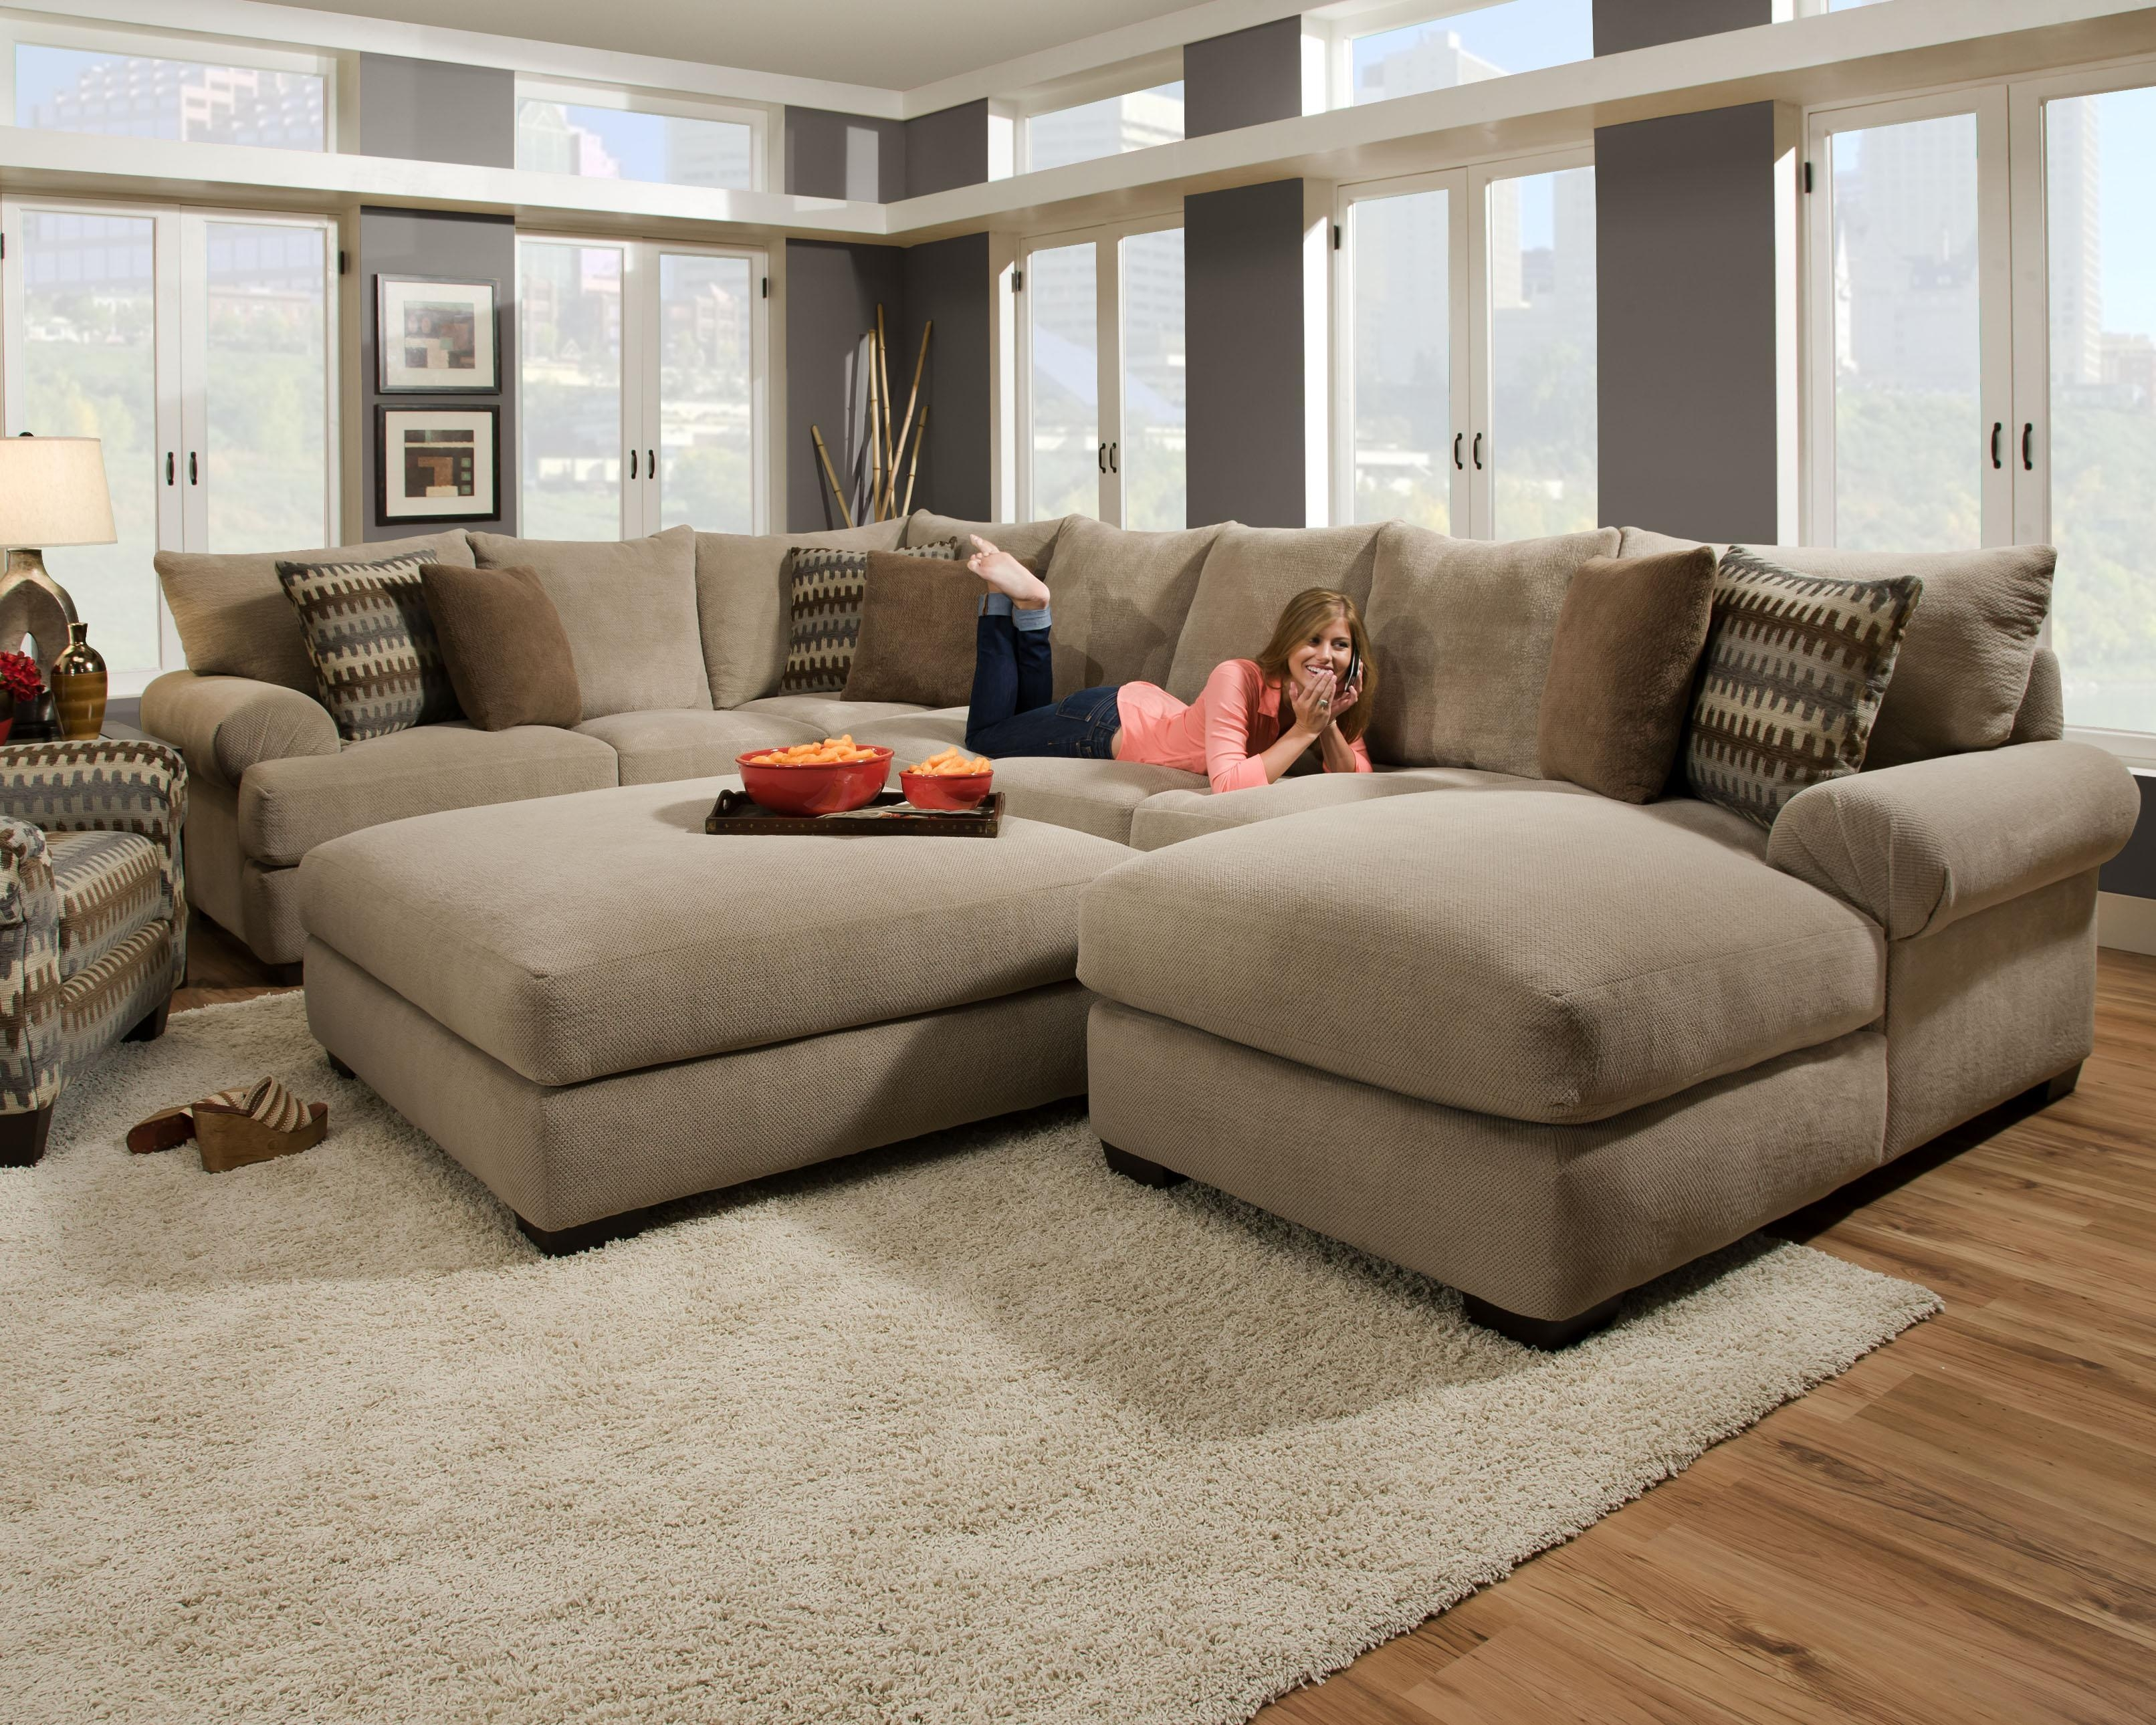 Cheap Comfortable Sectional Sofas | Tehranmix Decoration Within Large Comfortable Sectional Sofas (View 3 of 20)